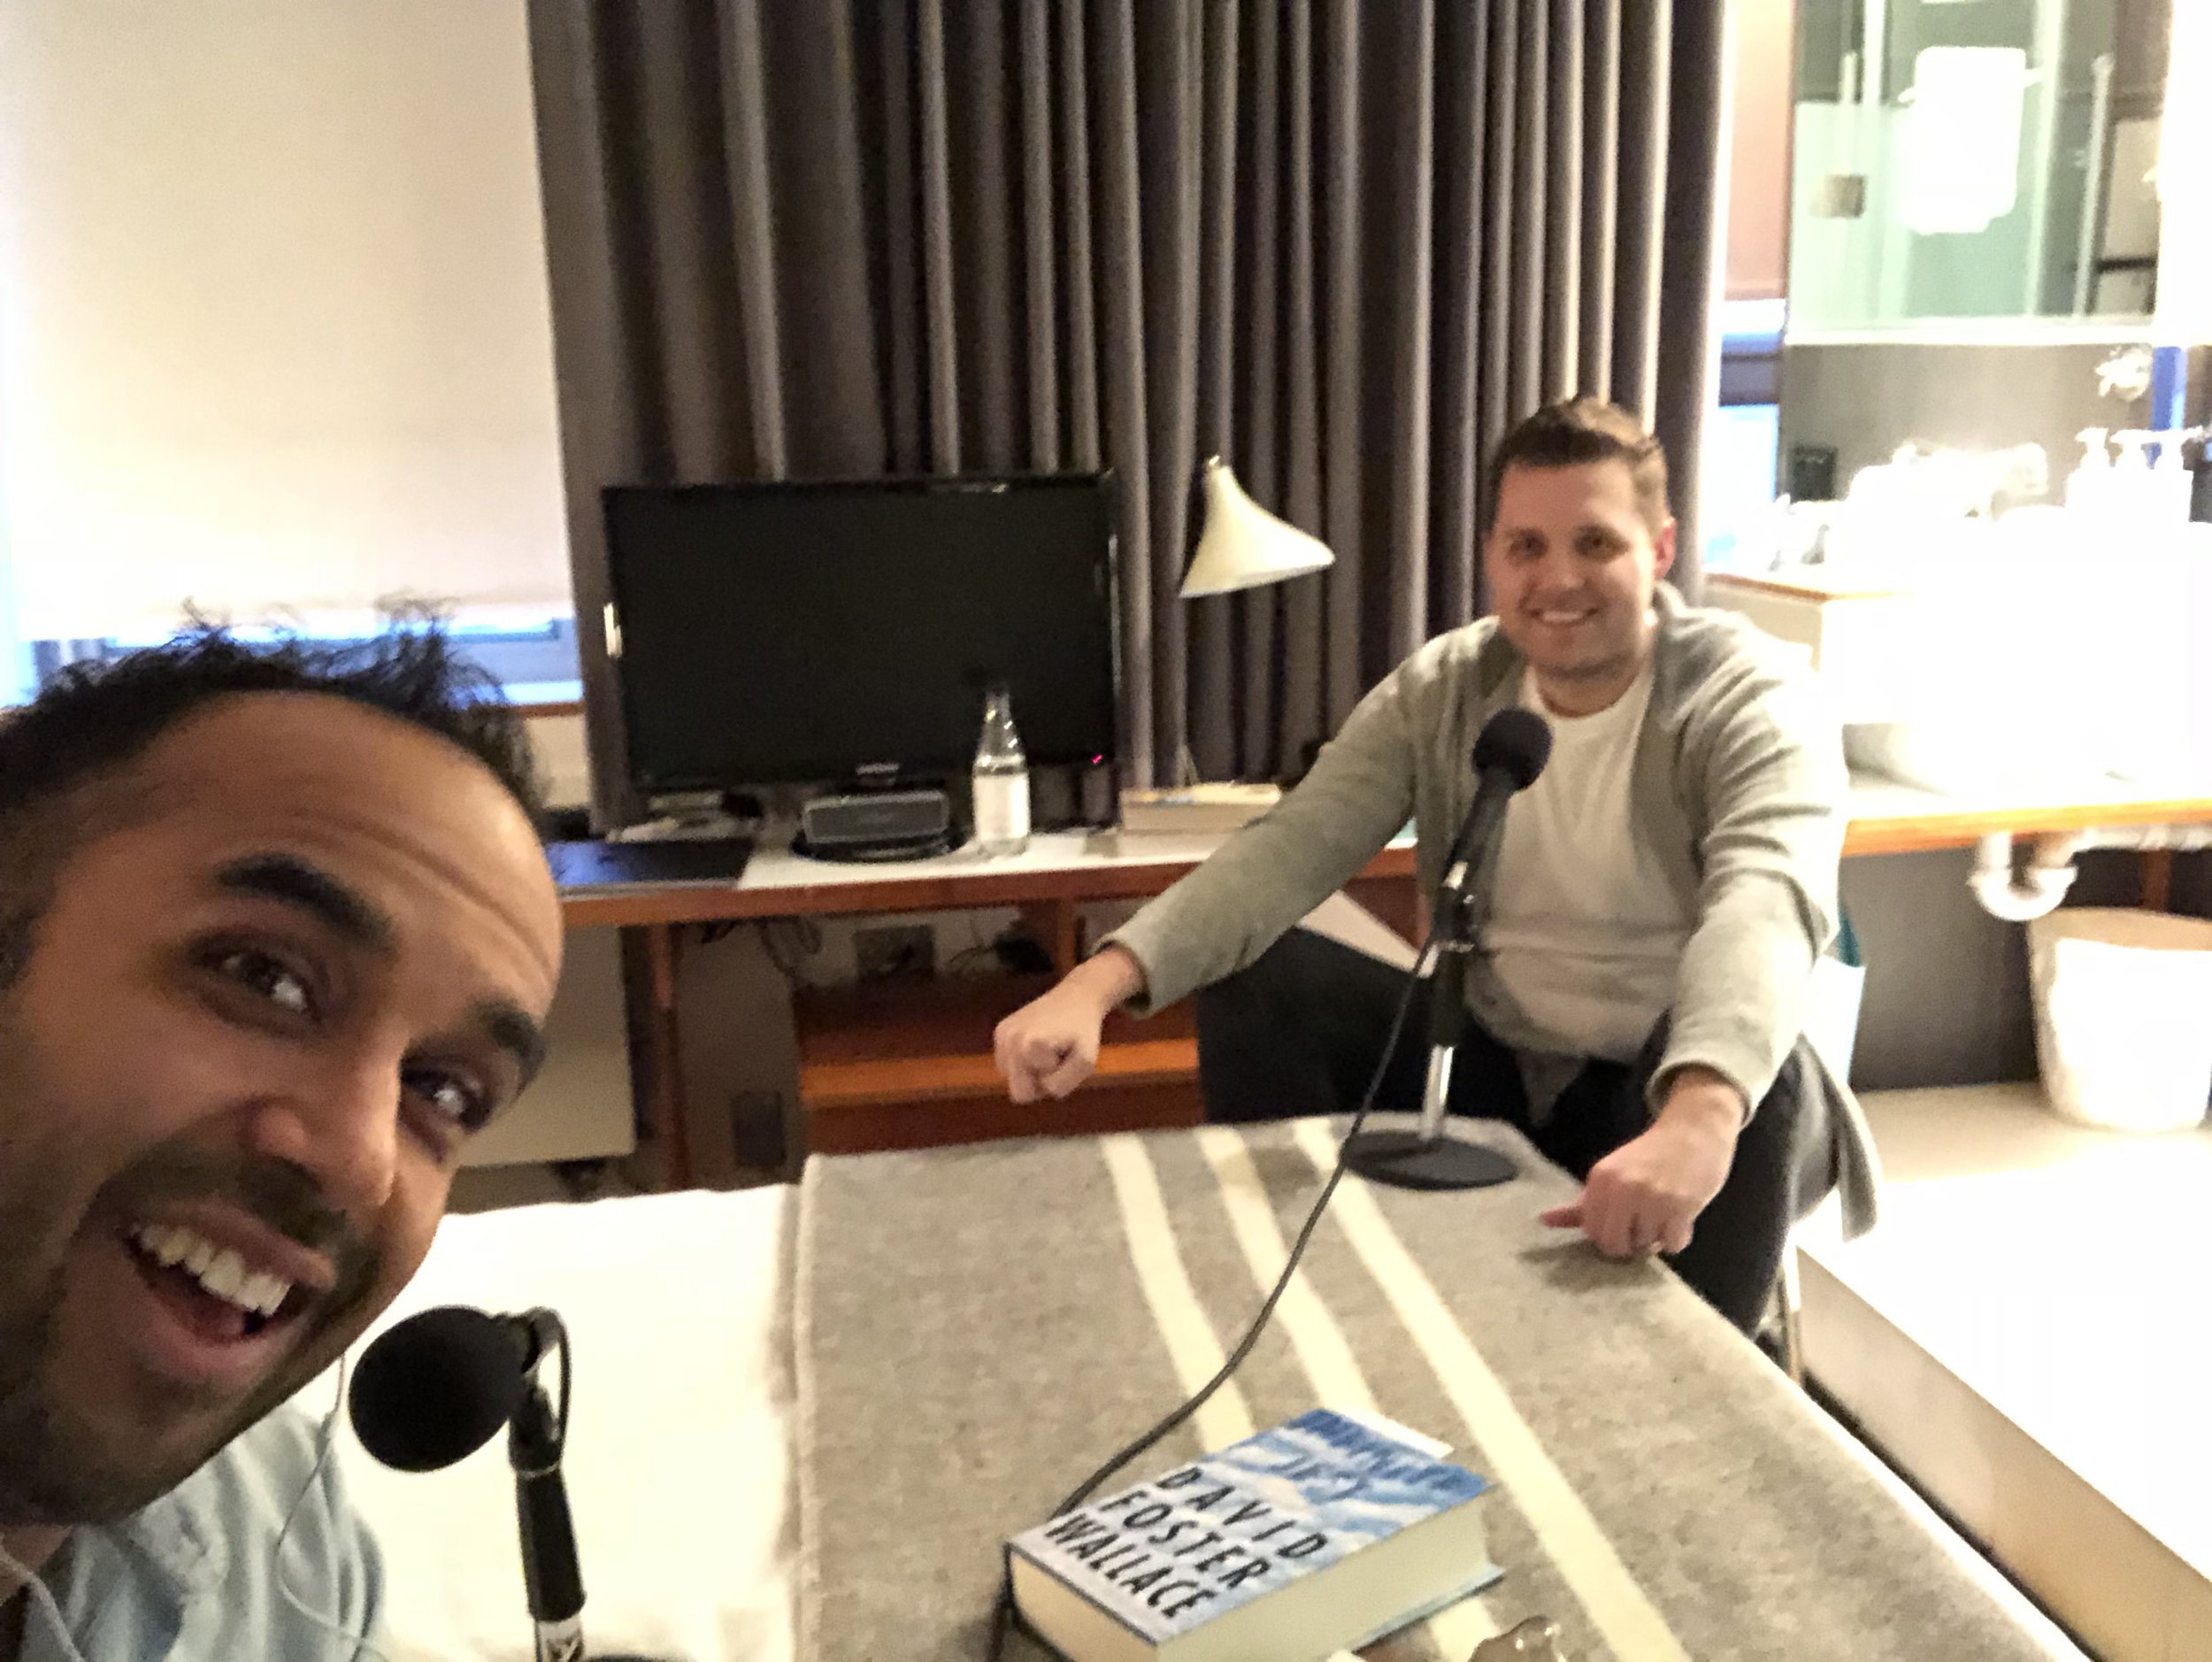 A blurry selfie of me and Mark in his hotel room!